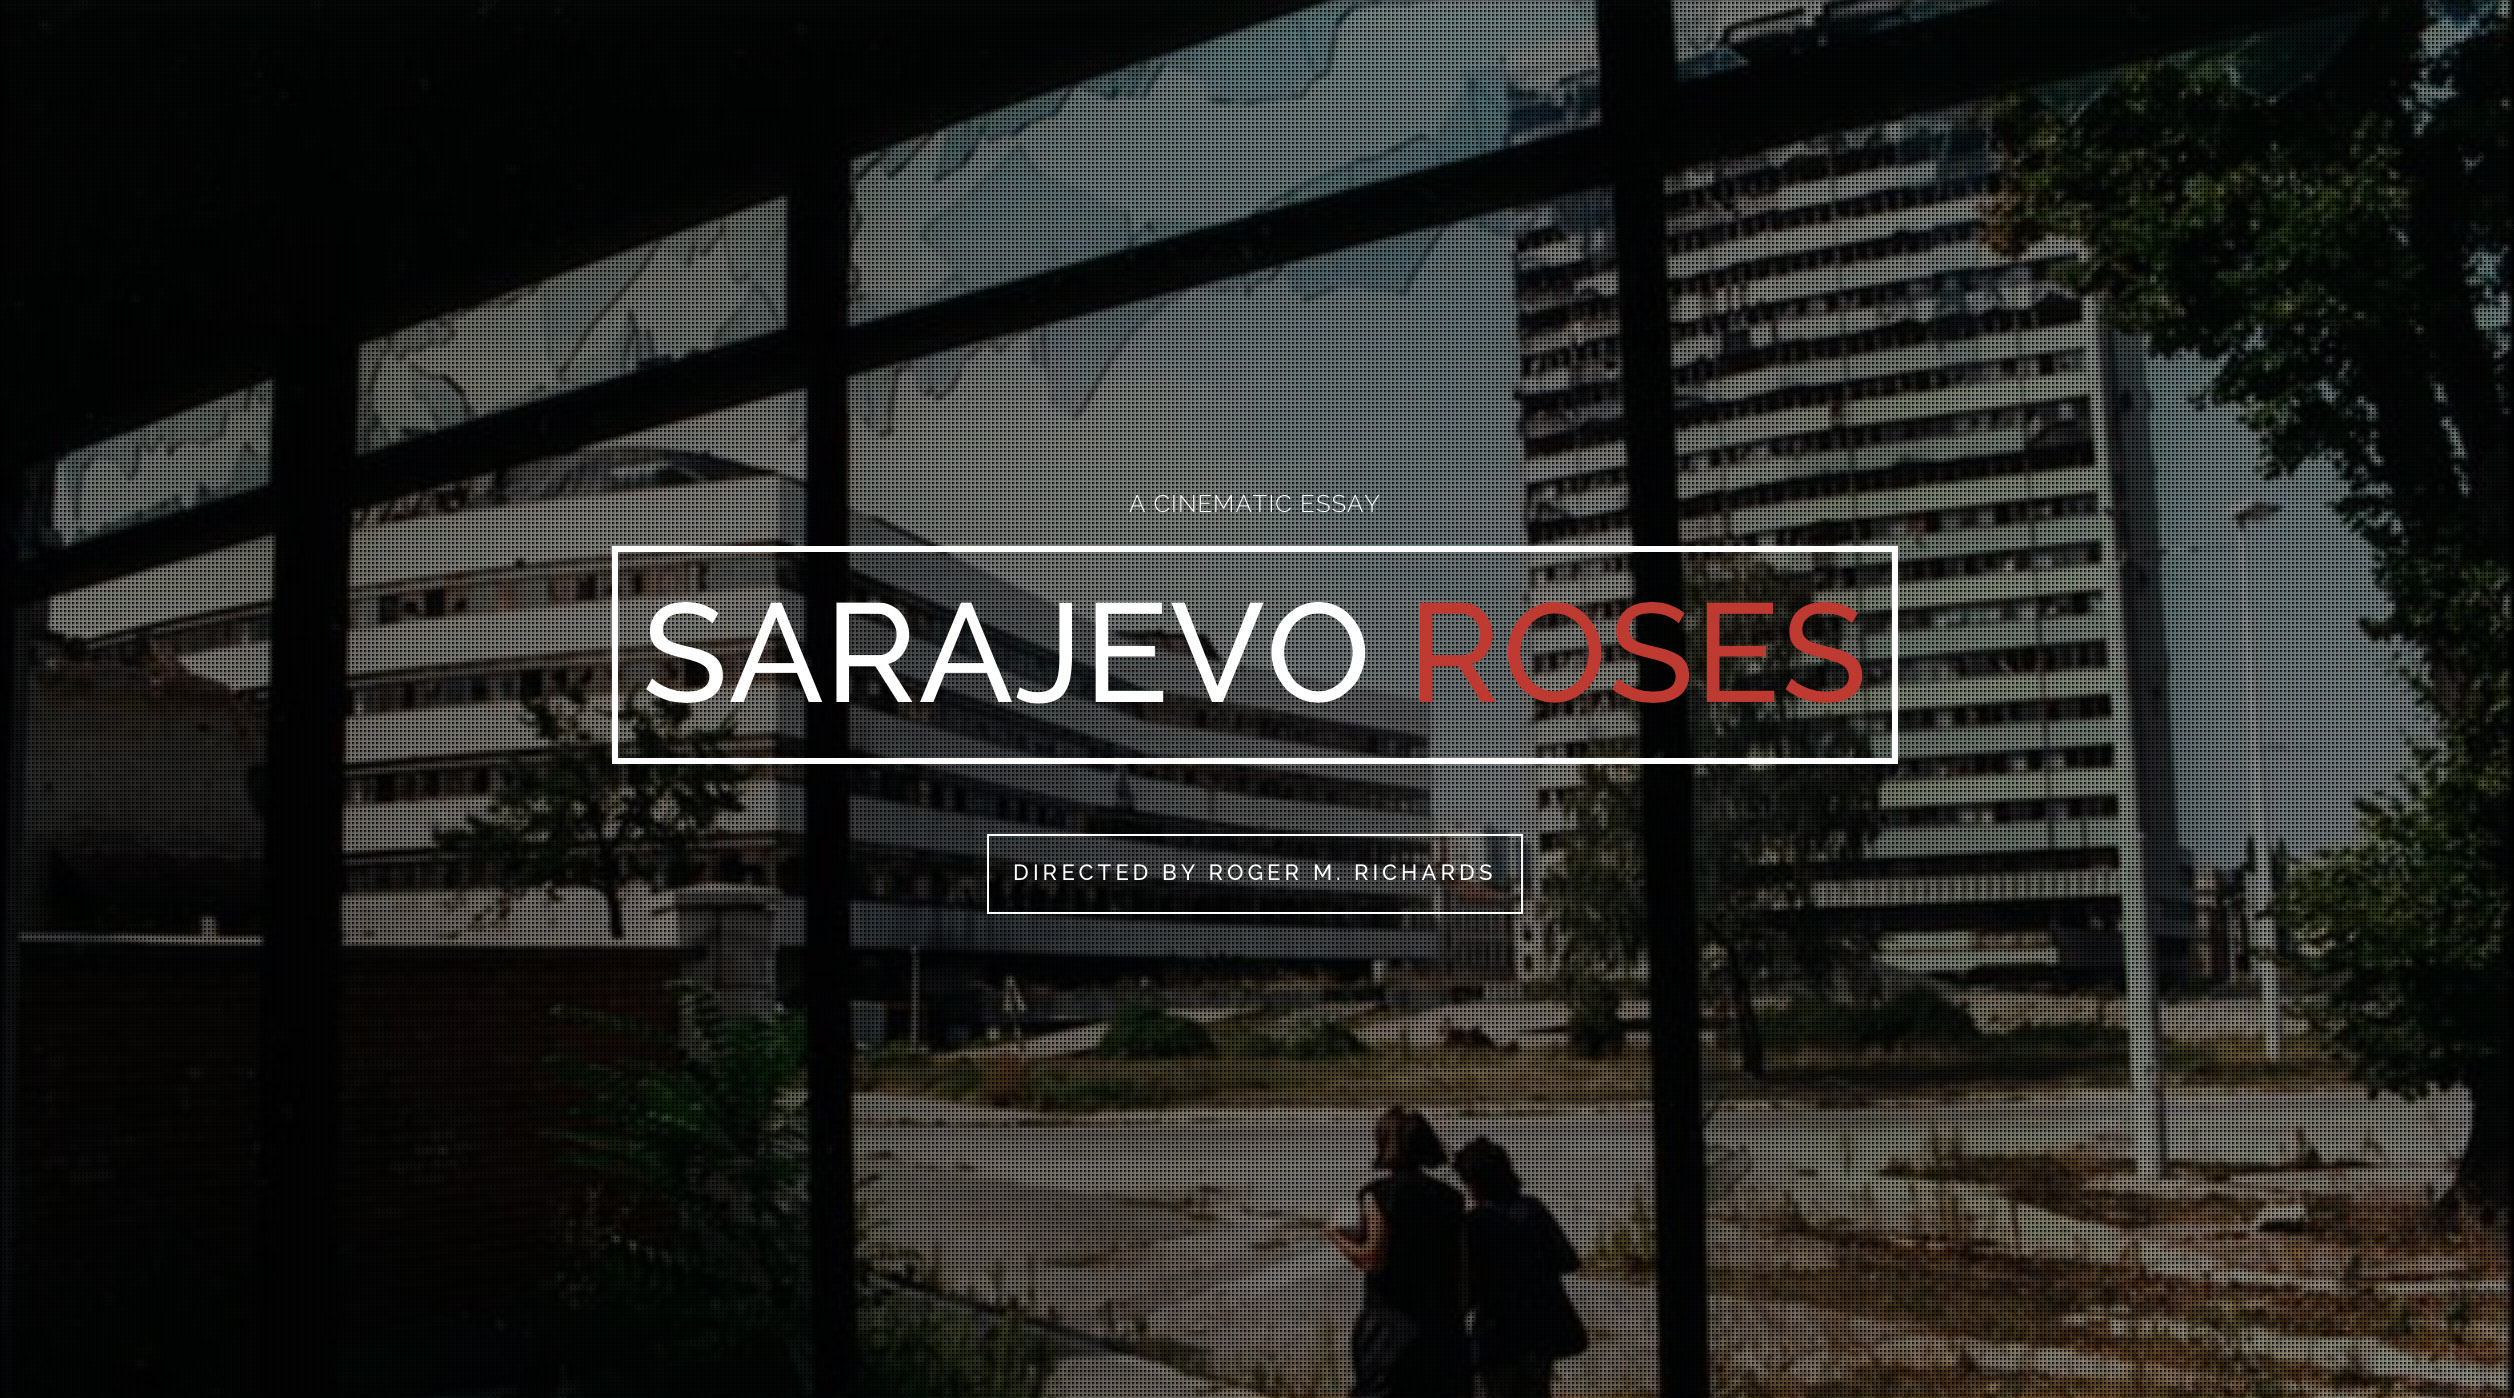 from the heart productions sarajevo roses a cinematic essay surviving hell is just the first step a story of hope and healing lessons for a troubled world